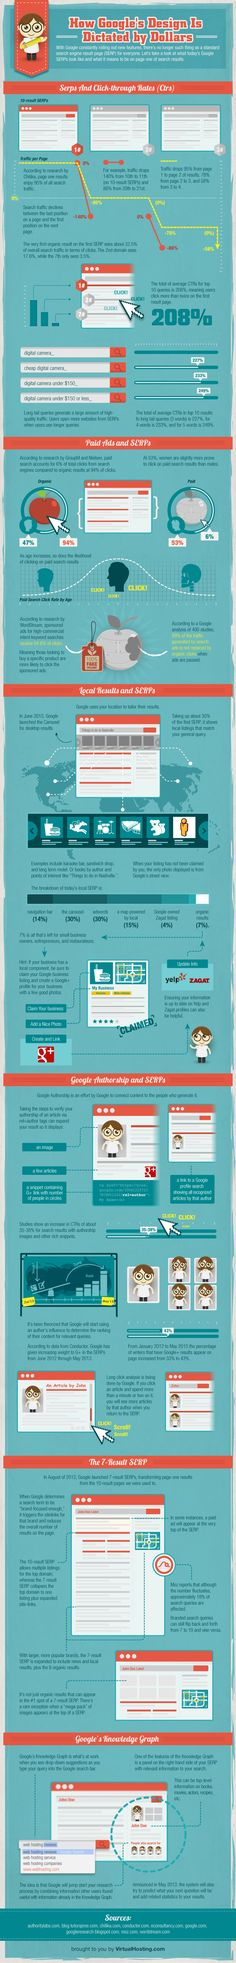 Google's Profit by Design [Infographic]